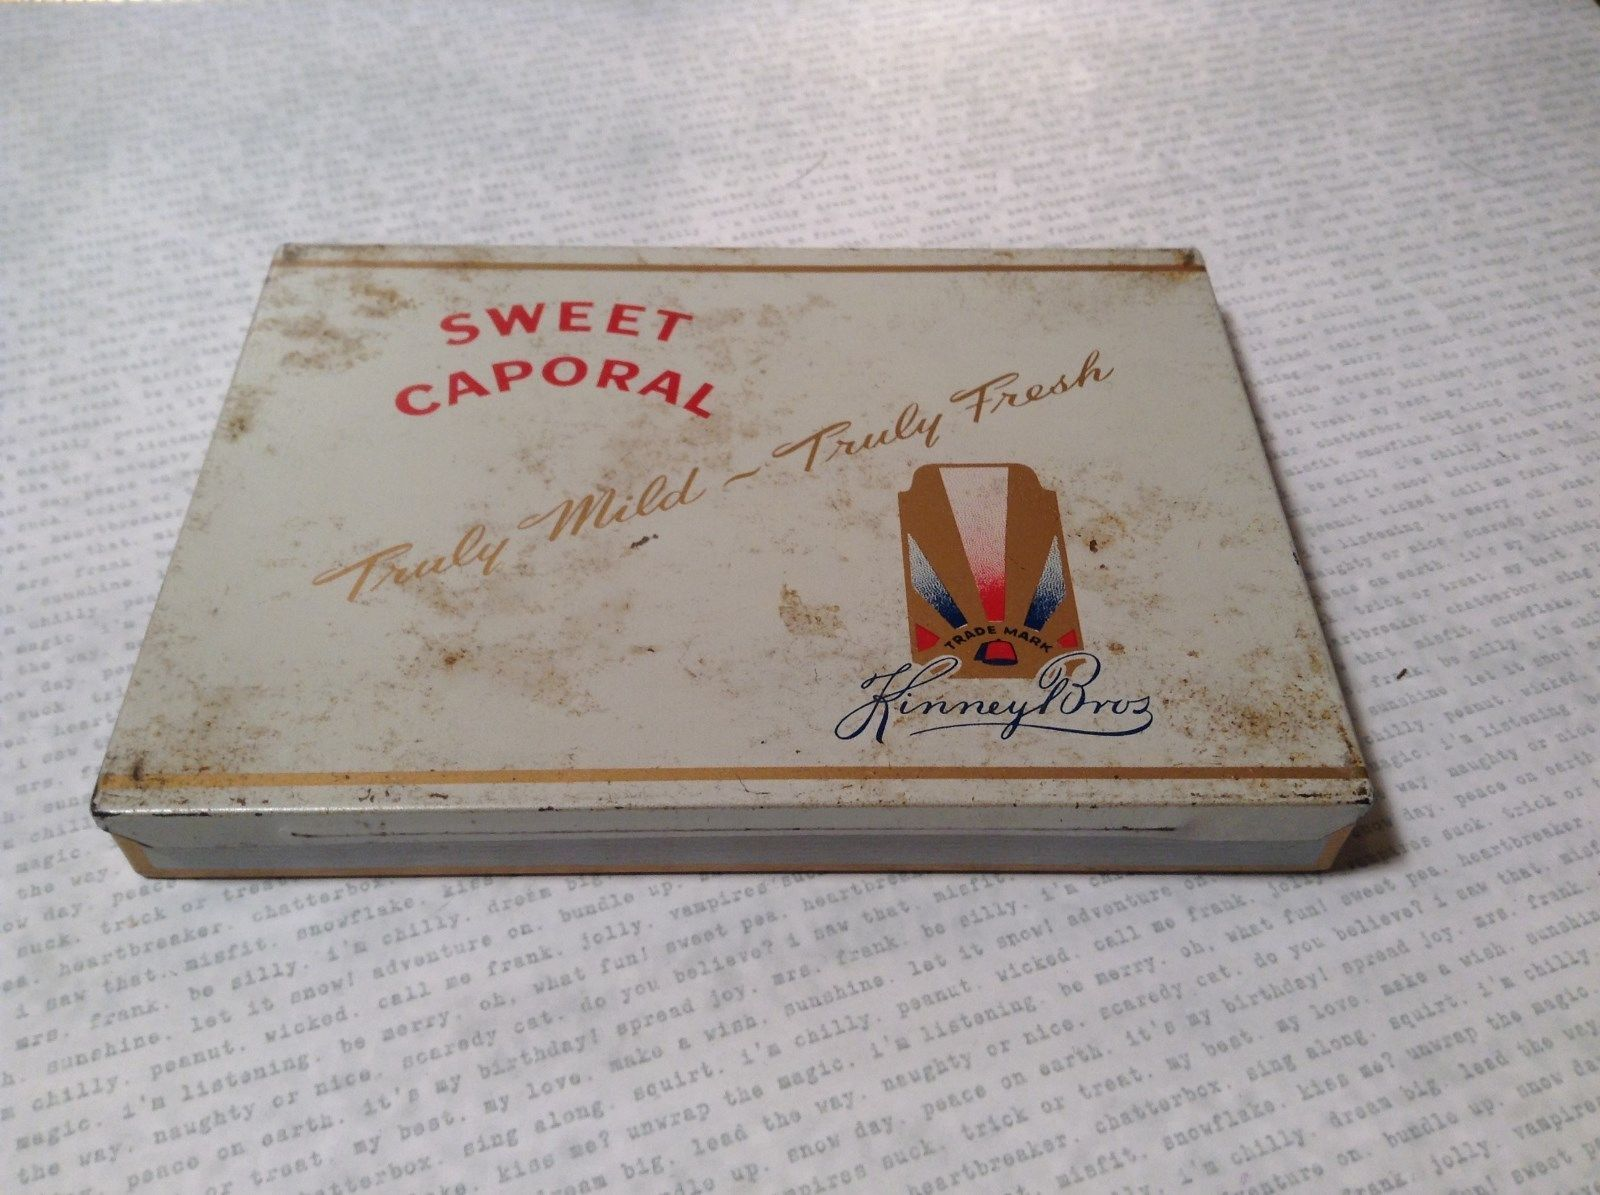 Vintage Sweet Caporal Cigarette Tin Case by Kinney Brothers